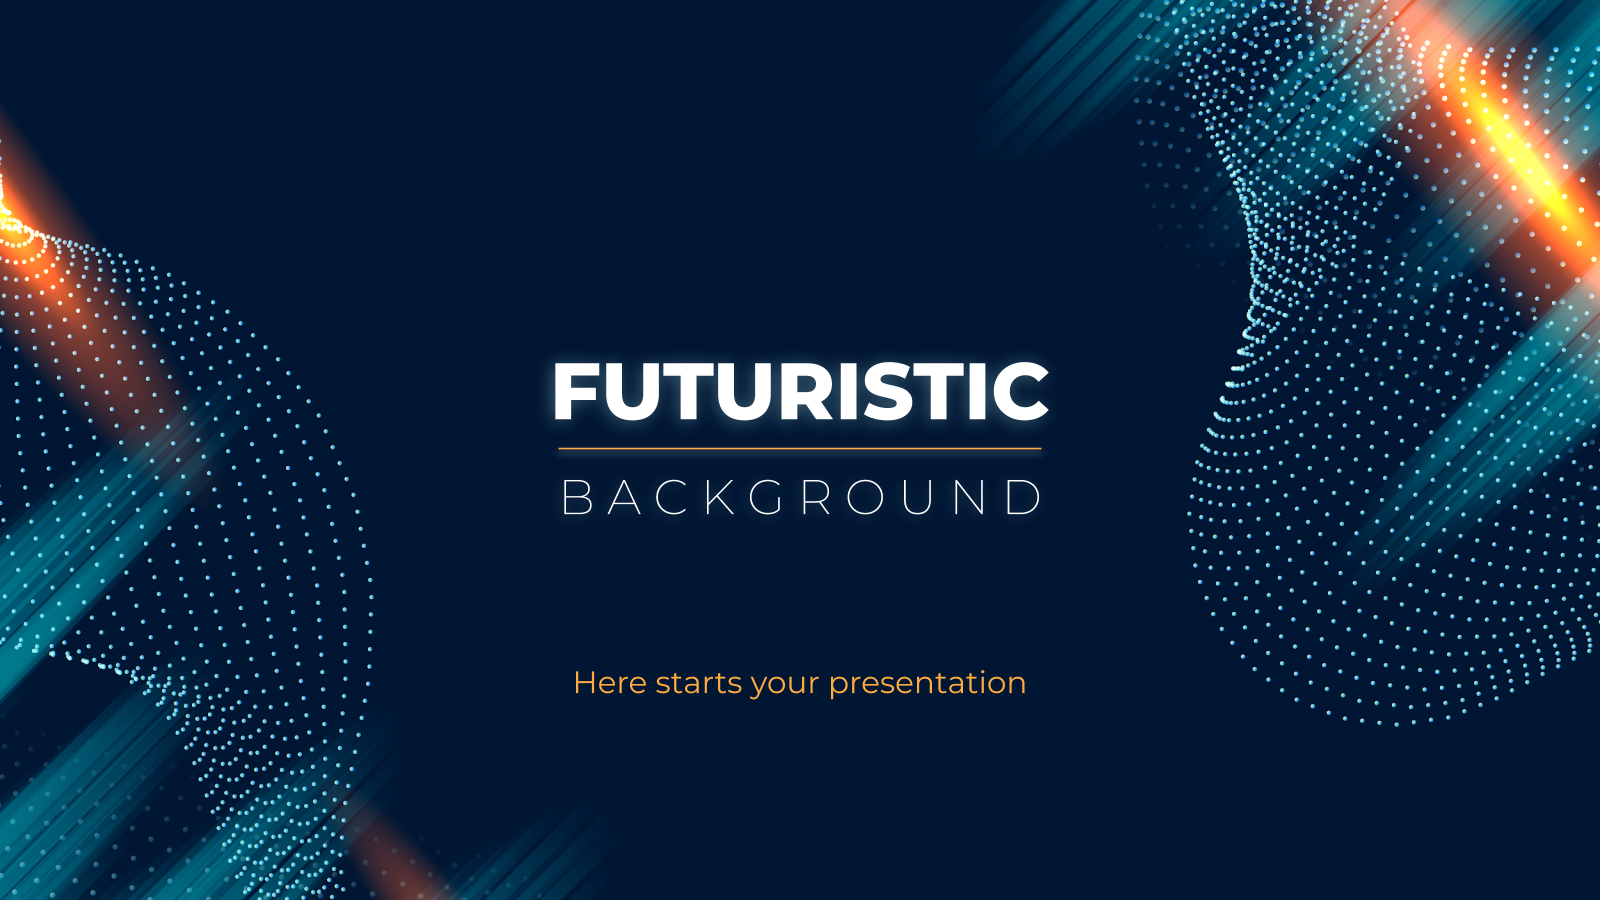 Futuristic Background presentation template